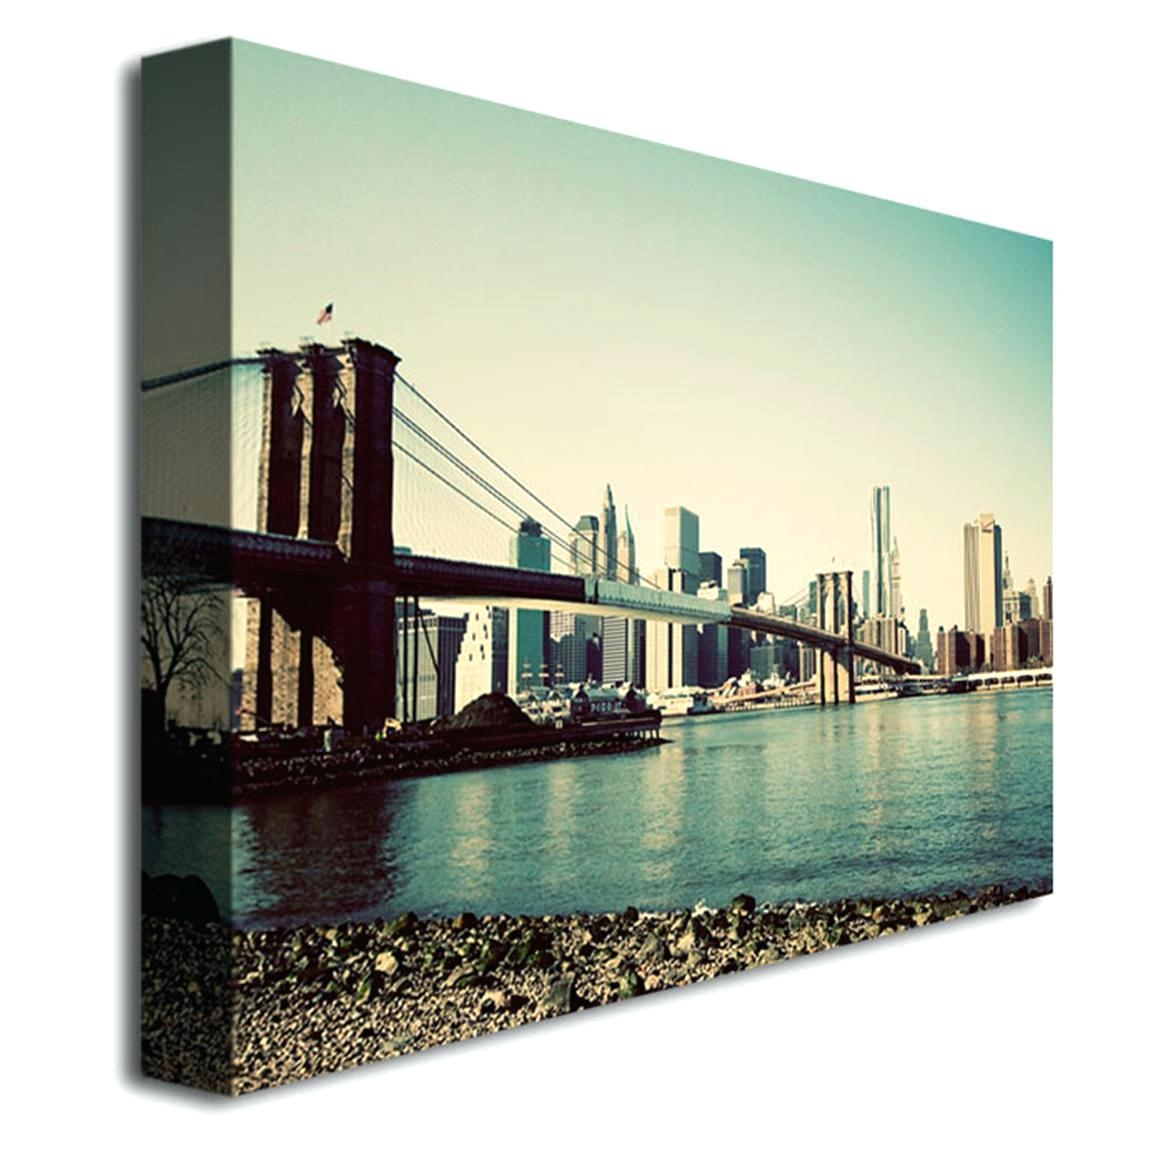 Wall Ideas : Brooklyn Bridge Glass Wall Art Zoom Ikea Brooklyn Pertaining To Ikea Brooklyn Bridge Wall Art (View 10 of 20)